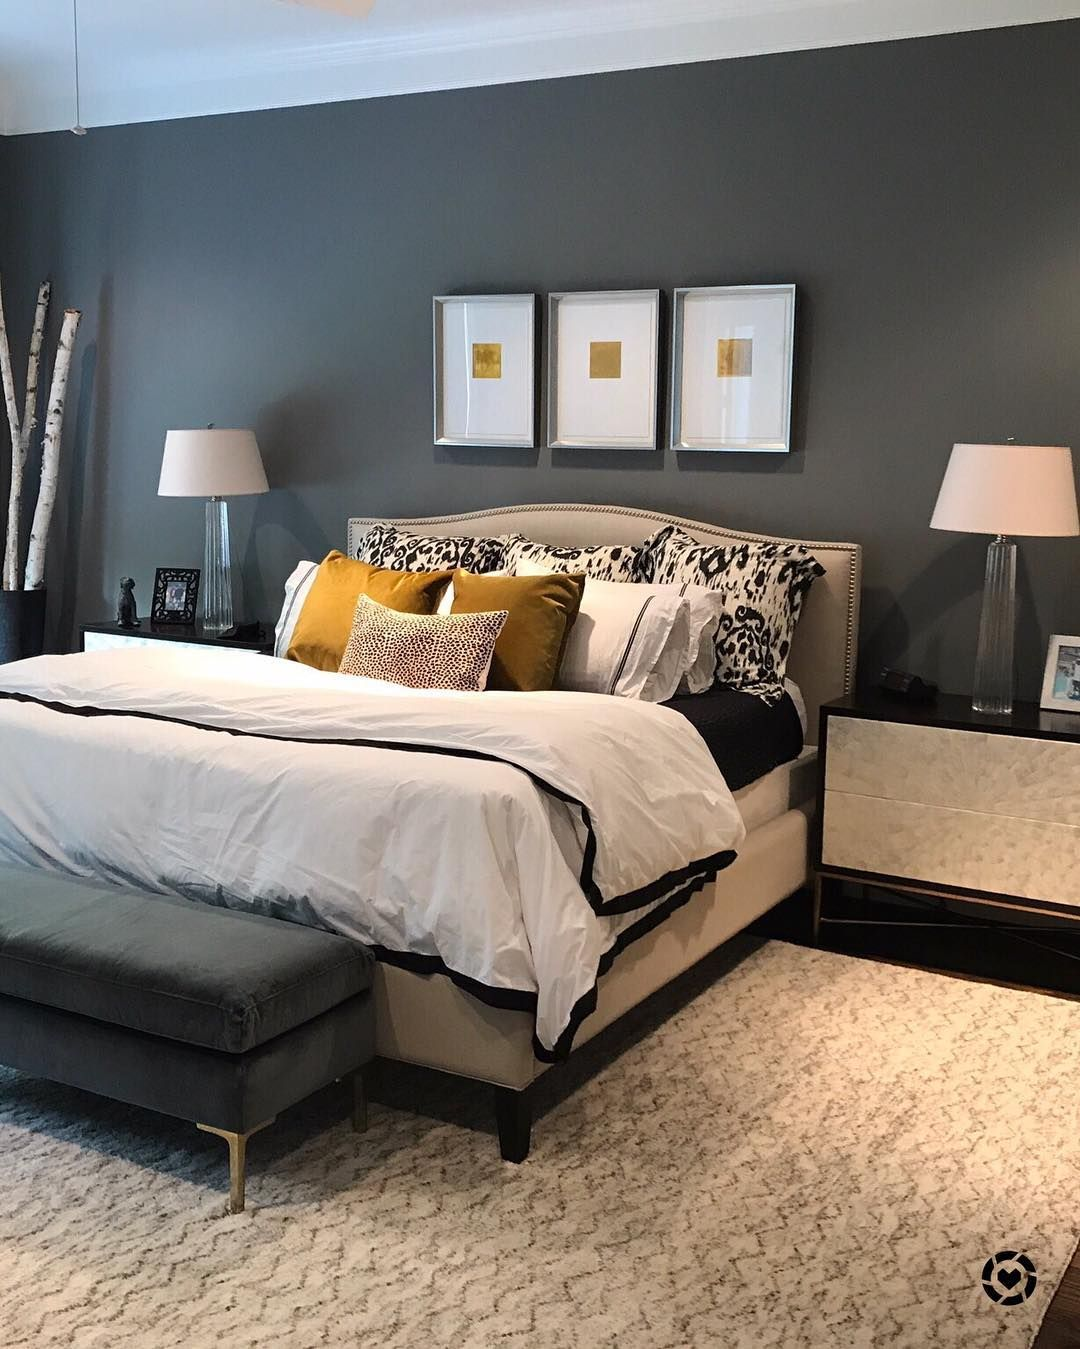 Pin by Jessica Lucania on Master bedroom Bedroom color